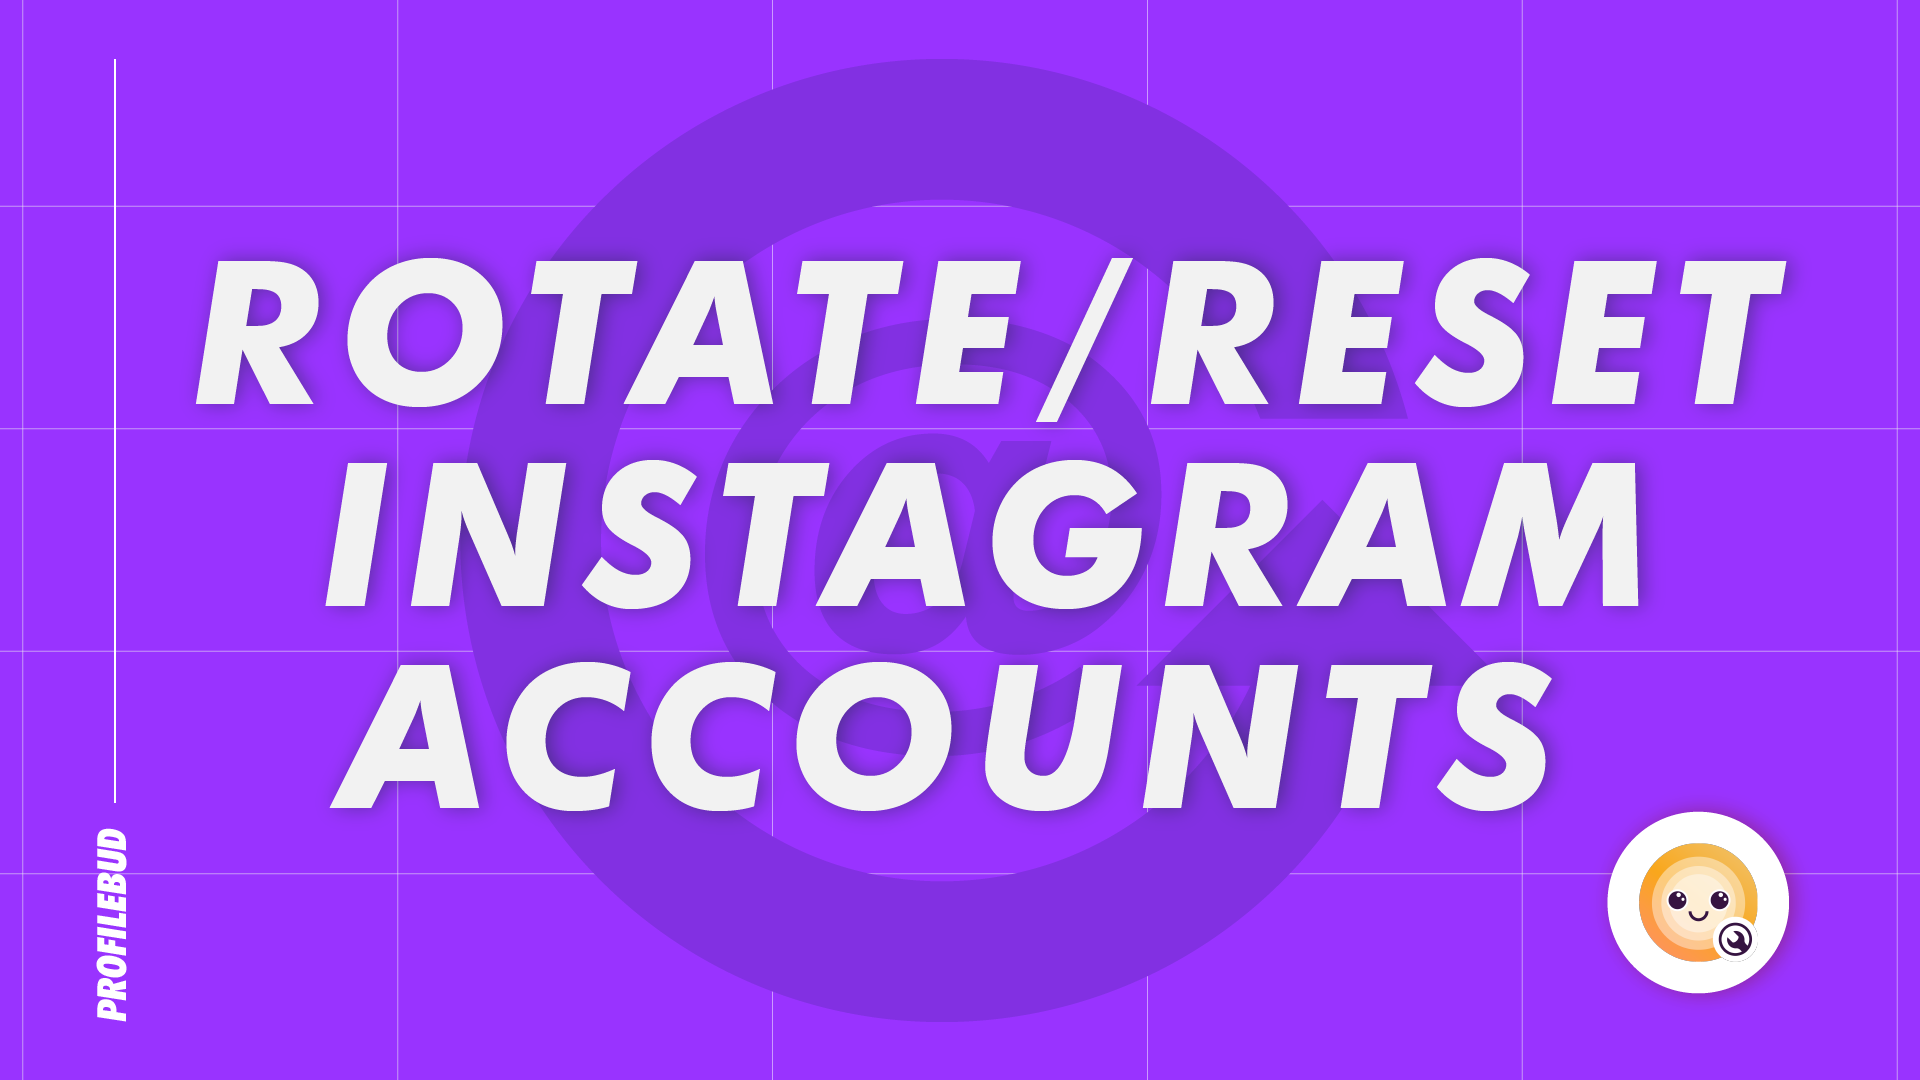 How to Rotate instagram accounts to reset Daily Limits